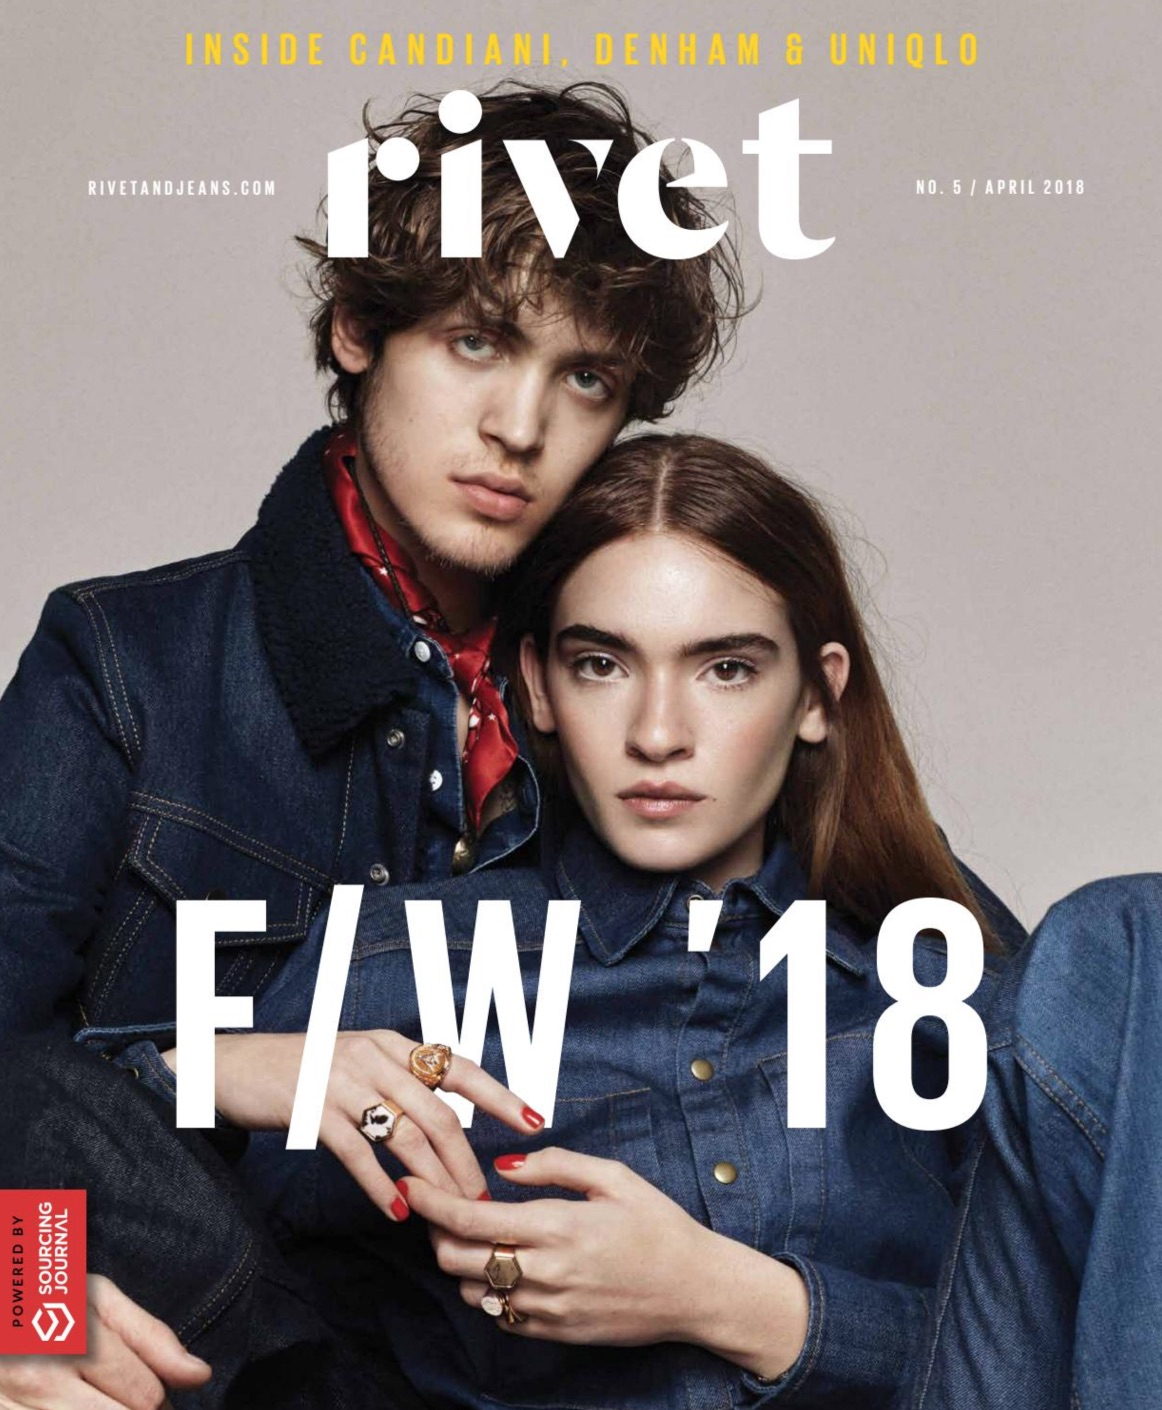 Inside The Latest Issue Of Rivet Sourcing Journal